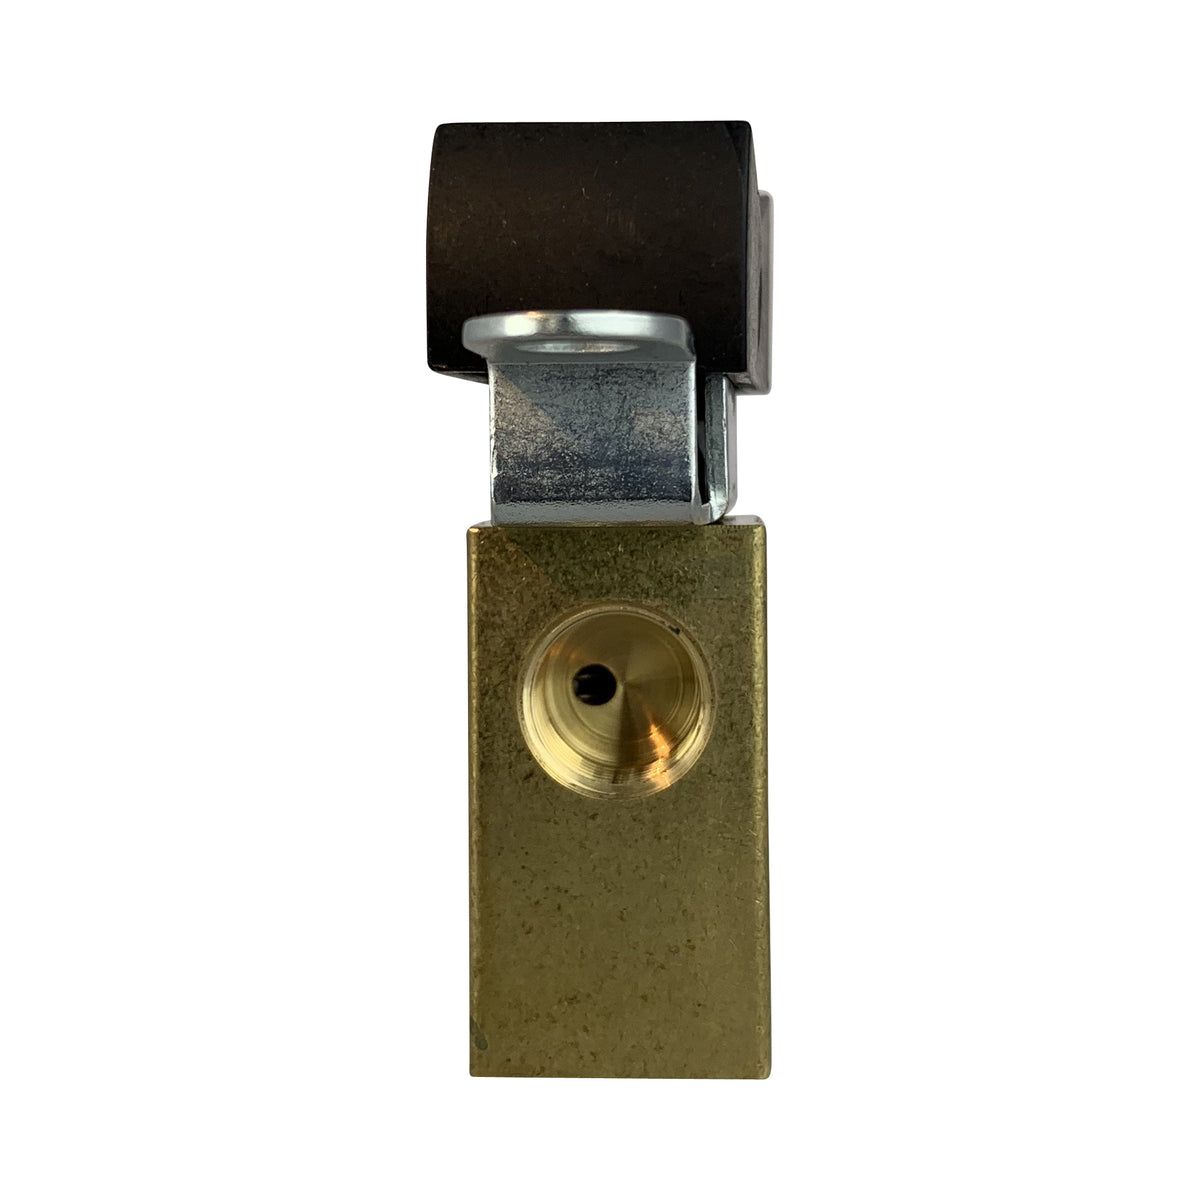 toggle switch with 2 mounting holes